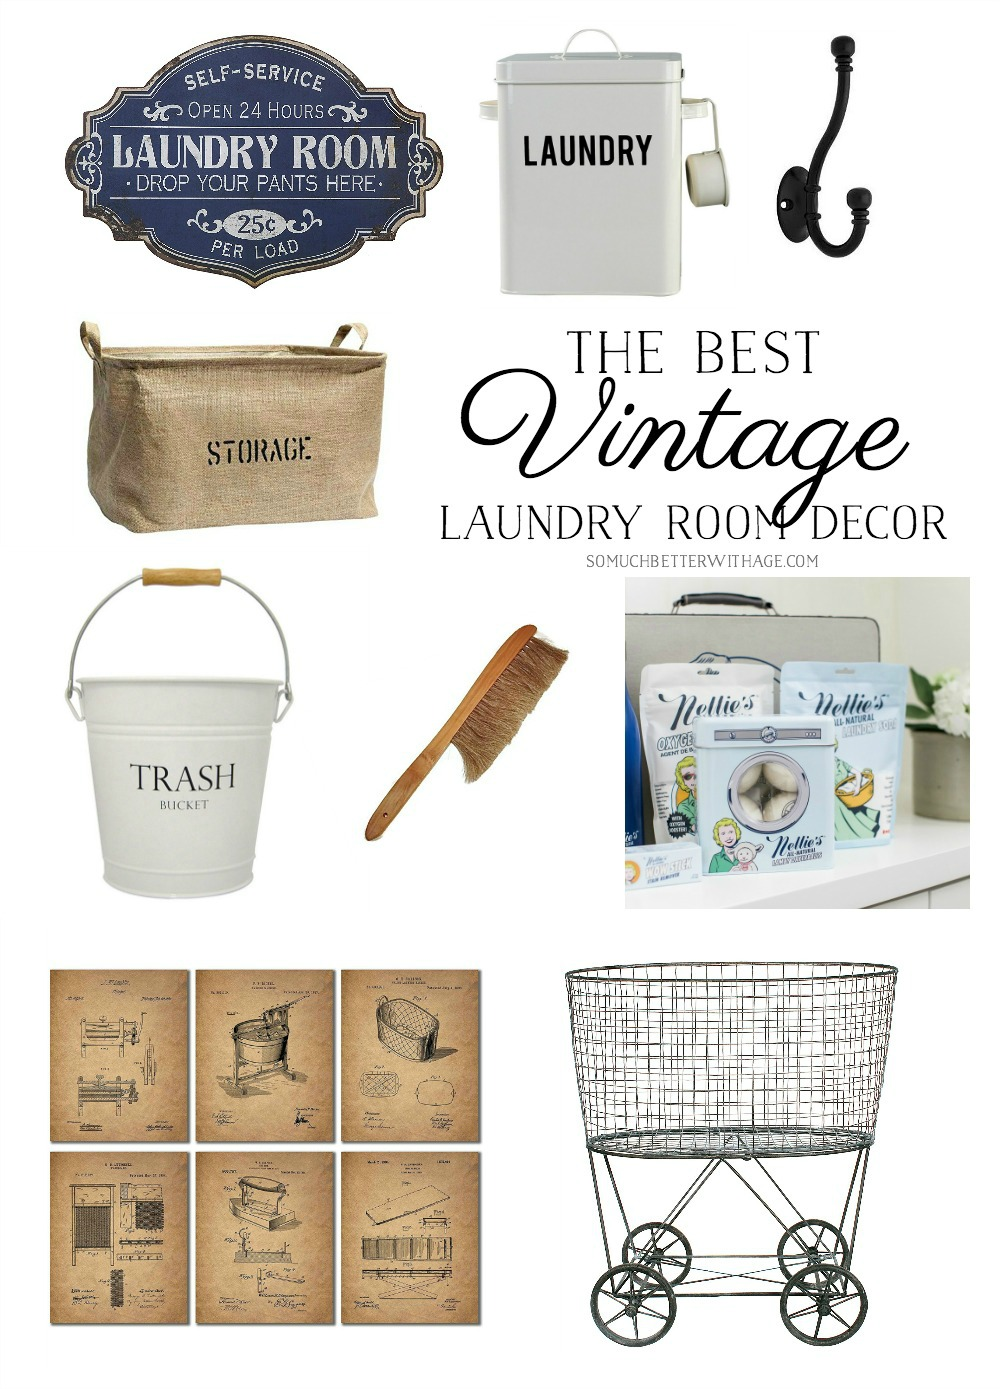 The Best Vintage Laundry Room Decor - So Much Better With Age